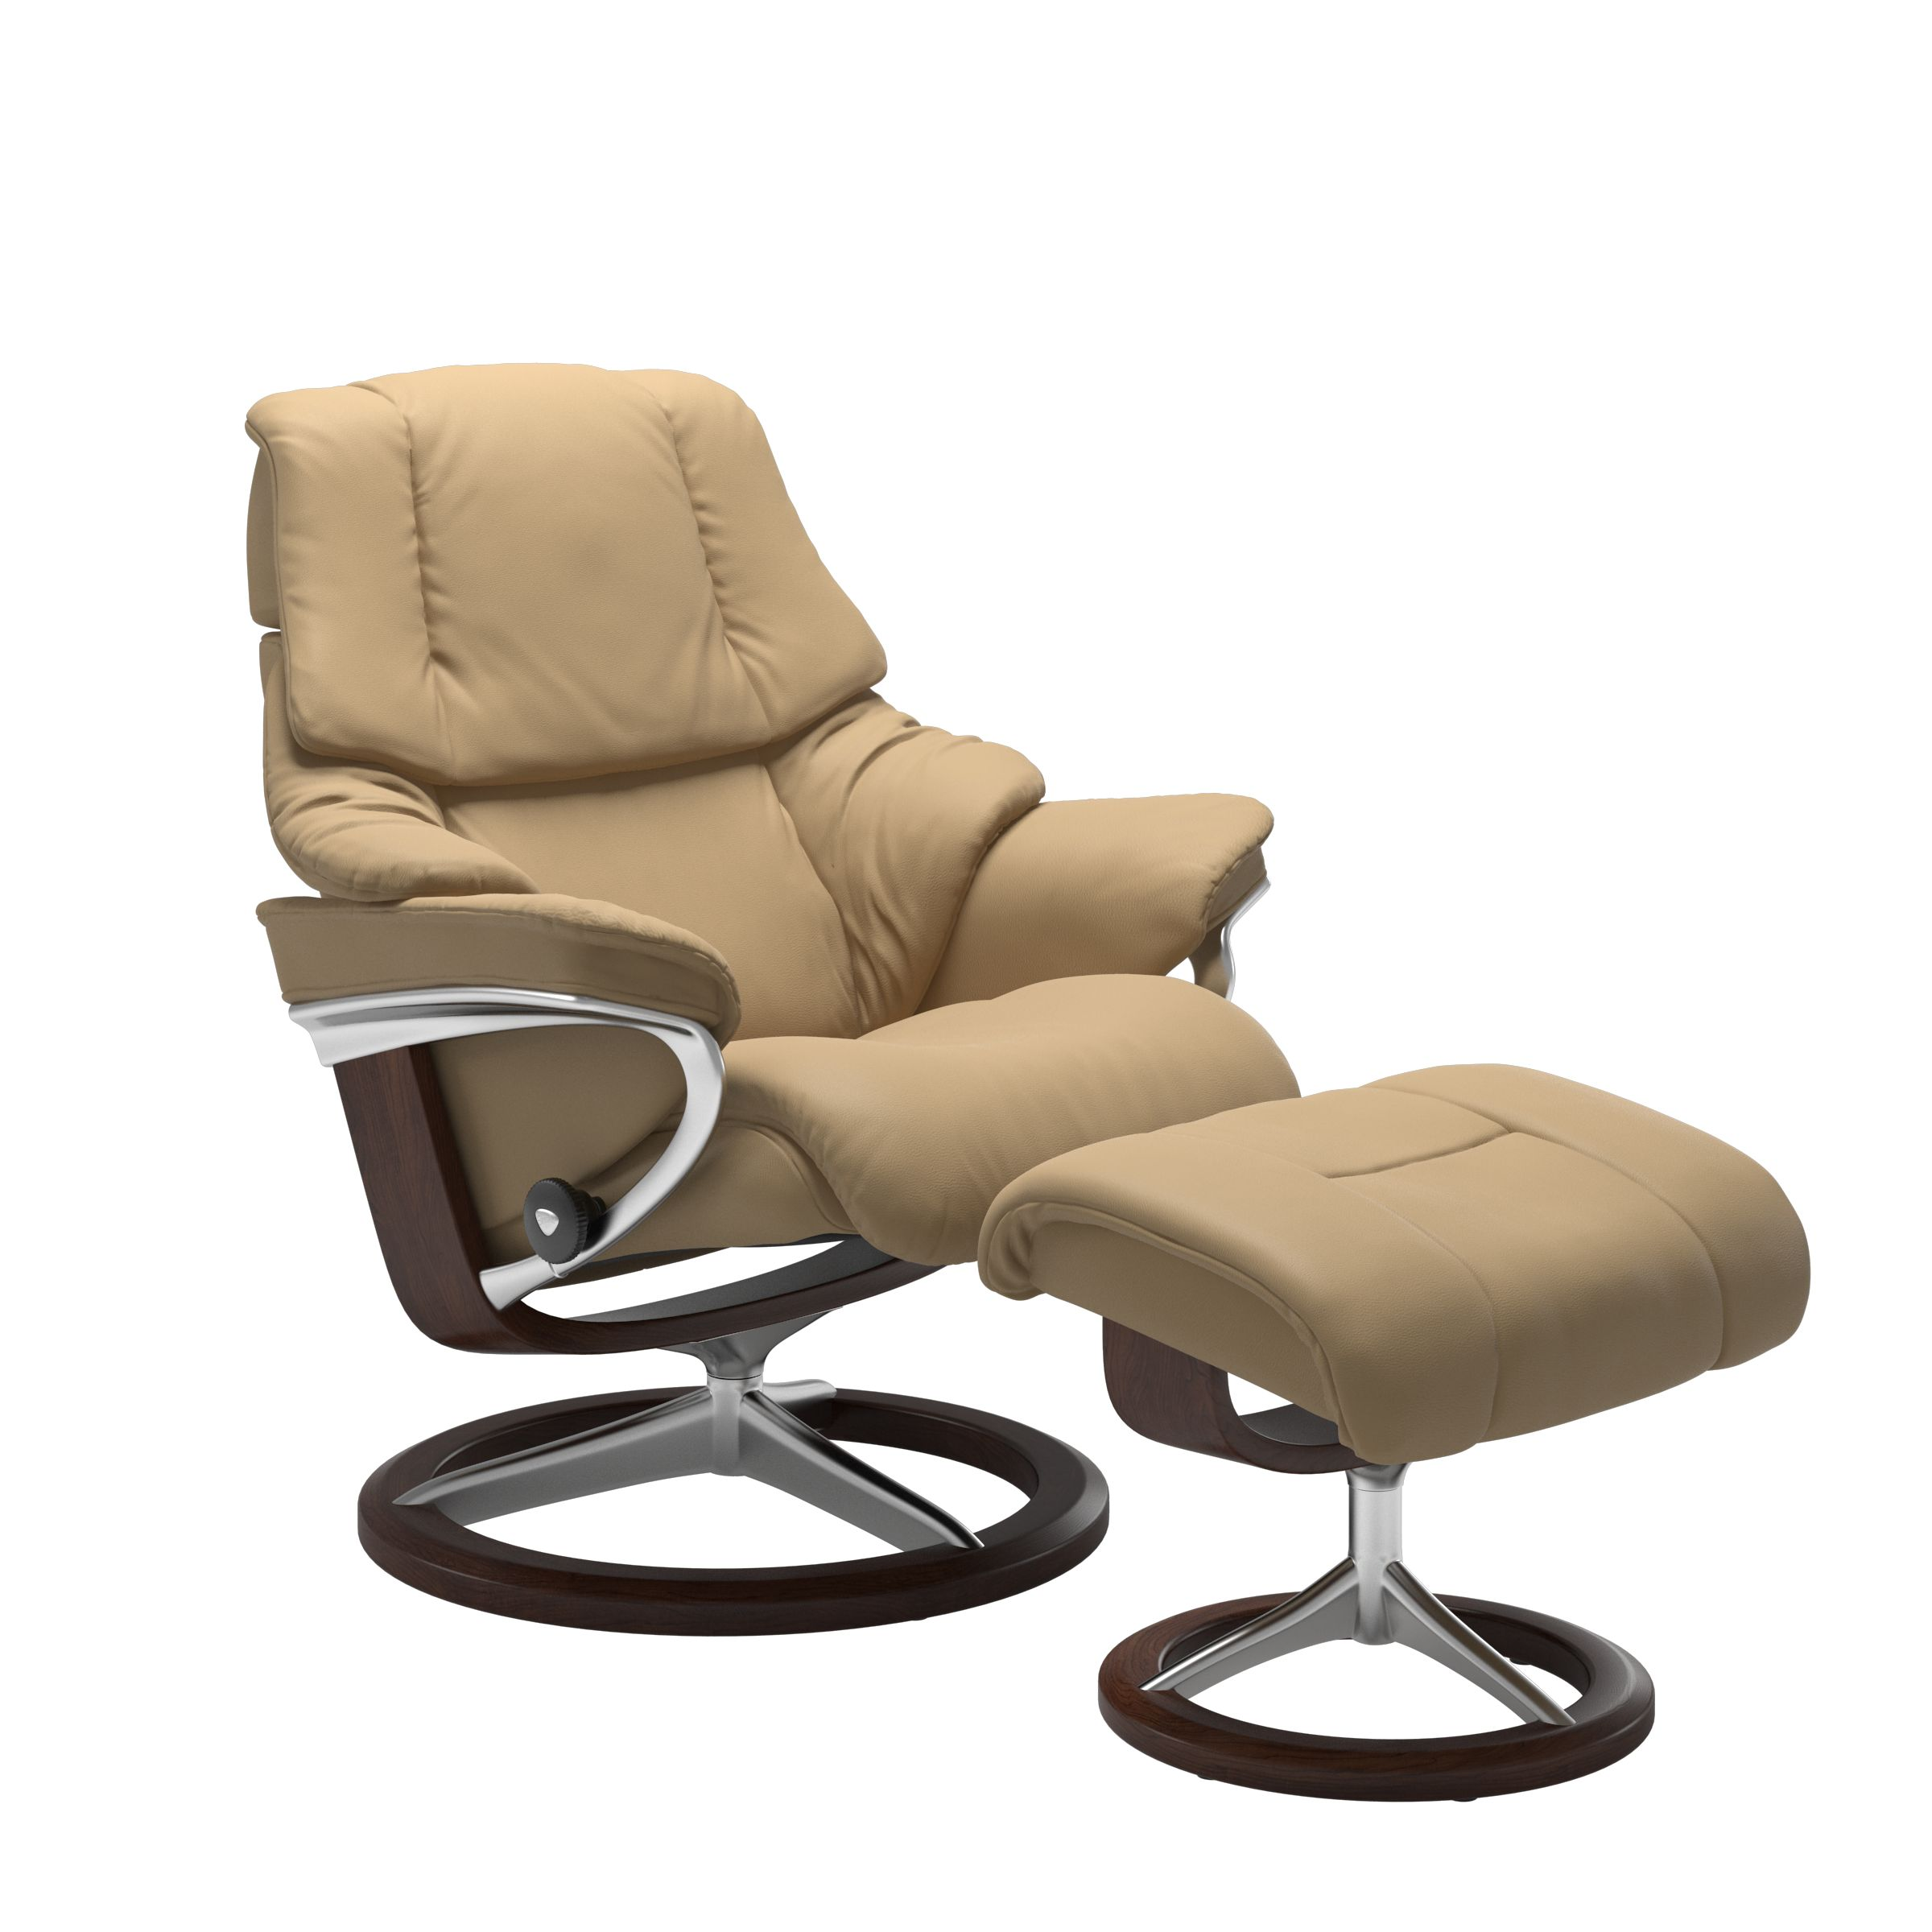 Relaxsessel Stressless Test Reno Stressless Relaxsessel